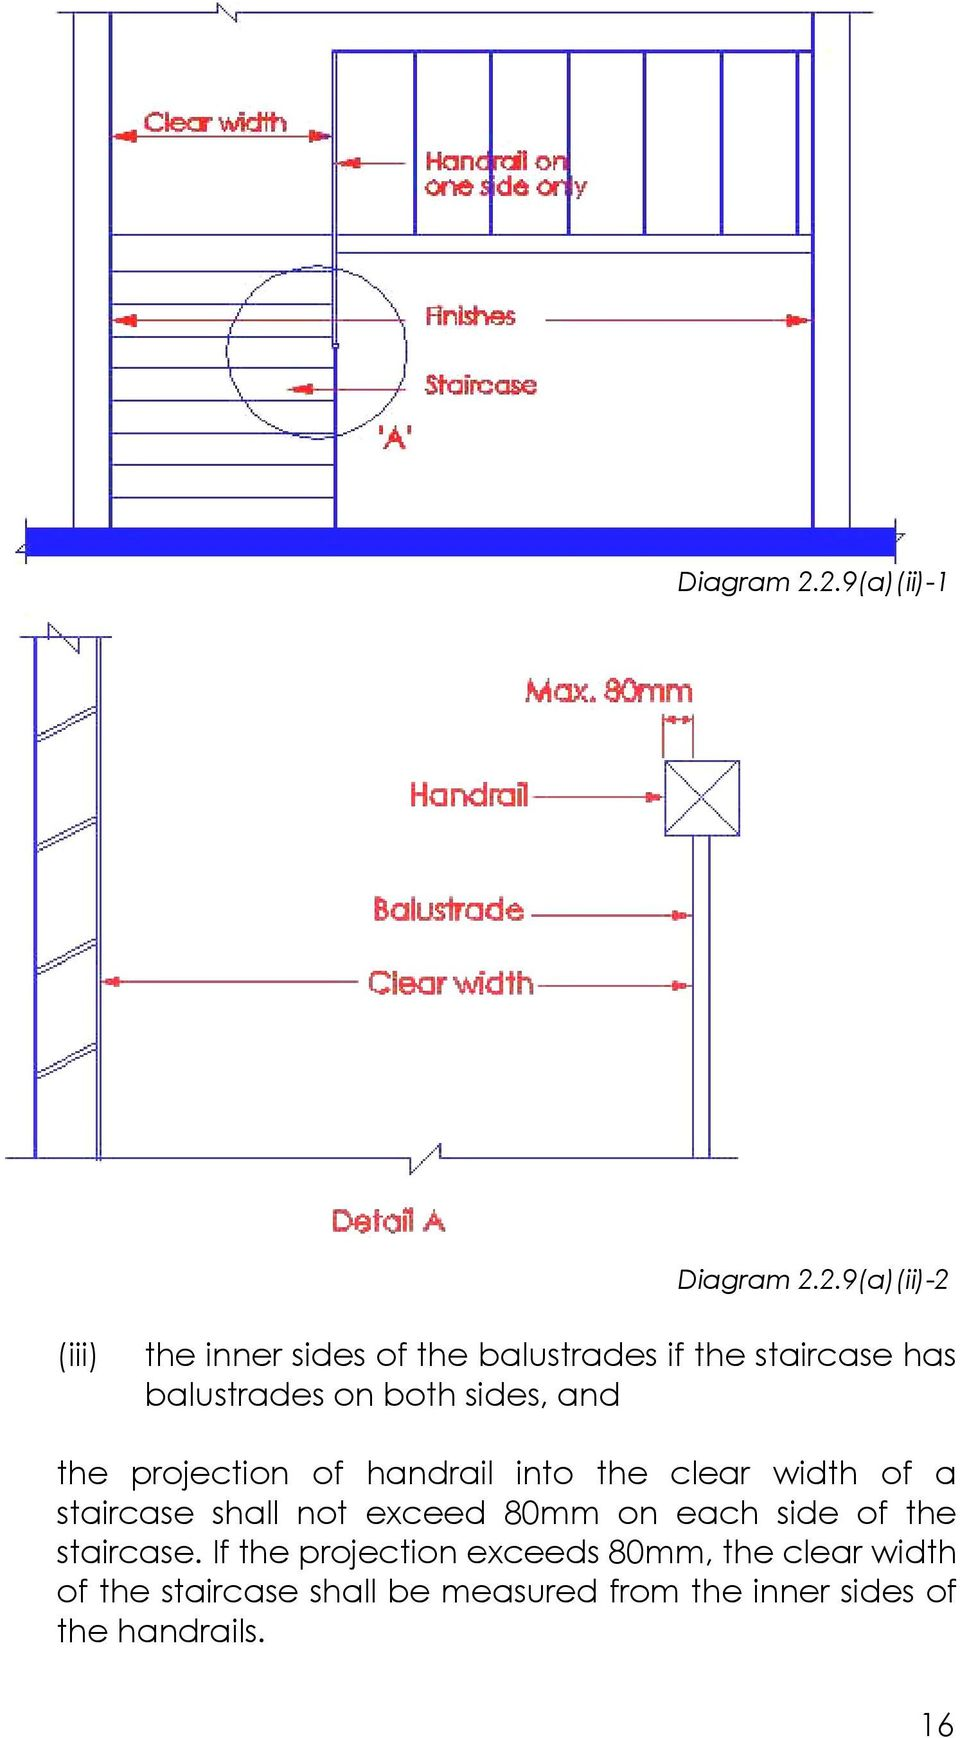 9(a)(ii)-2 (iii) the inner sides of the balustrades if the staircase has balustrades on both